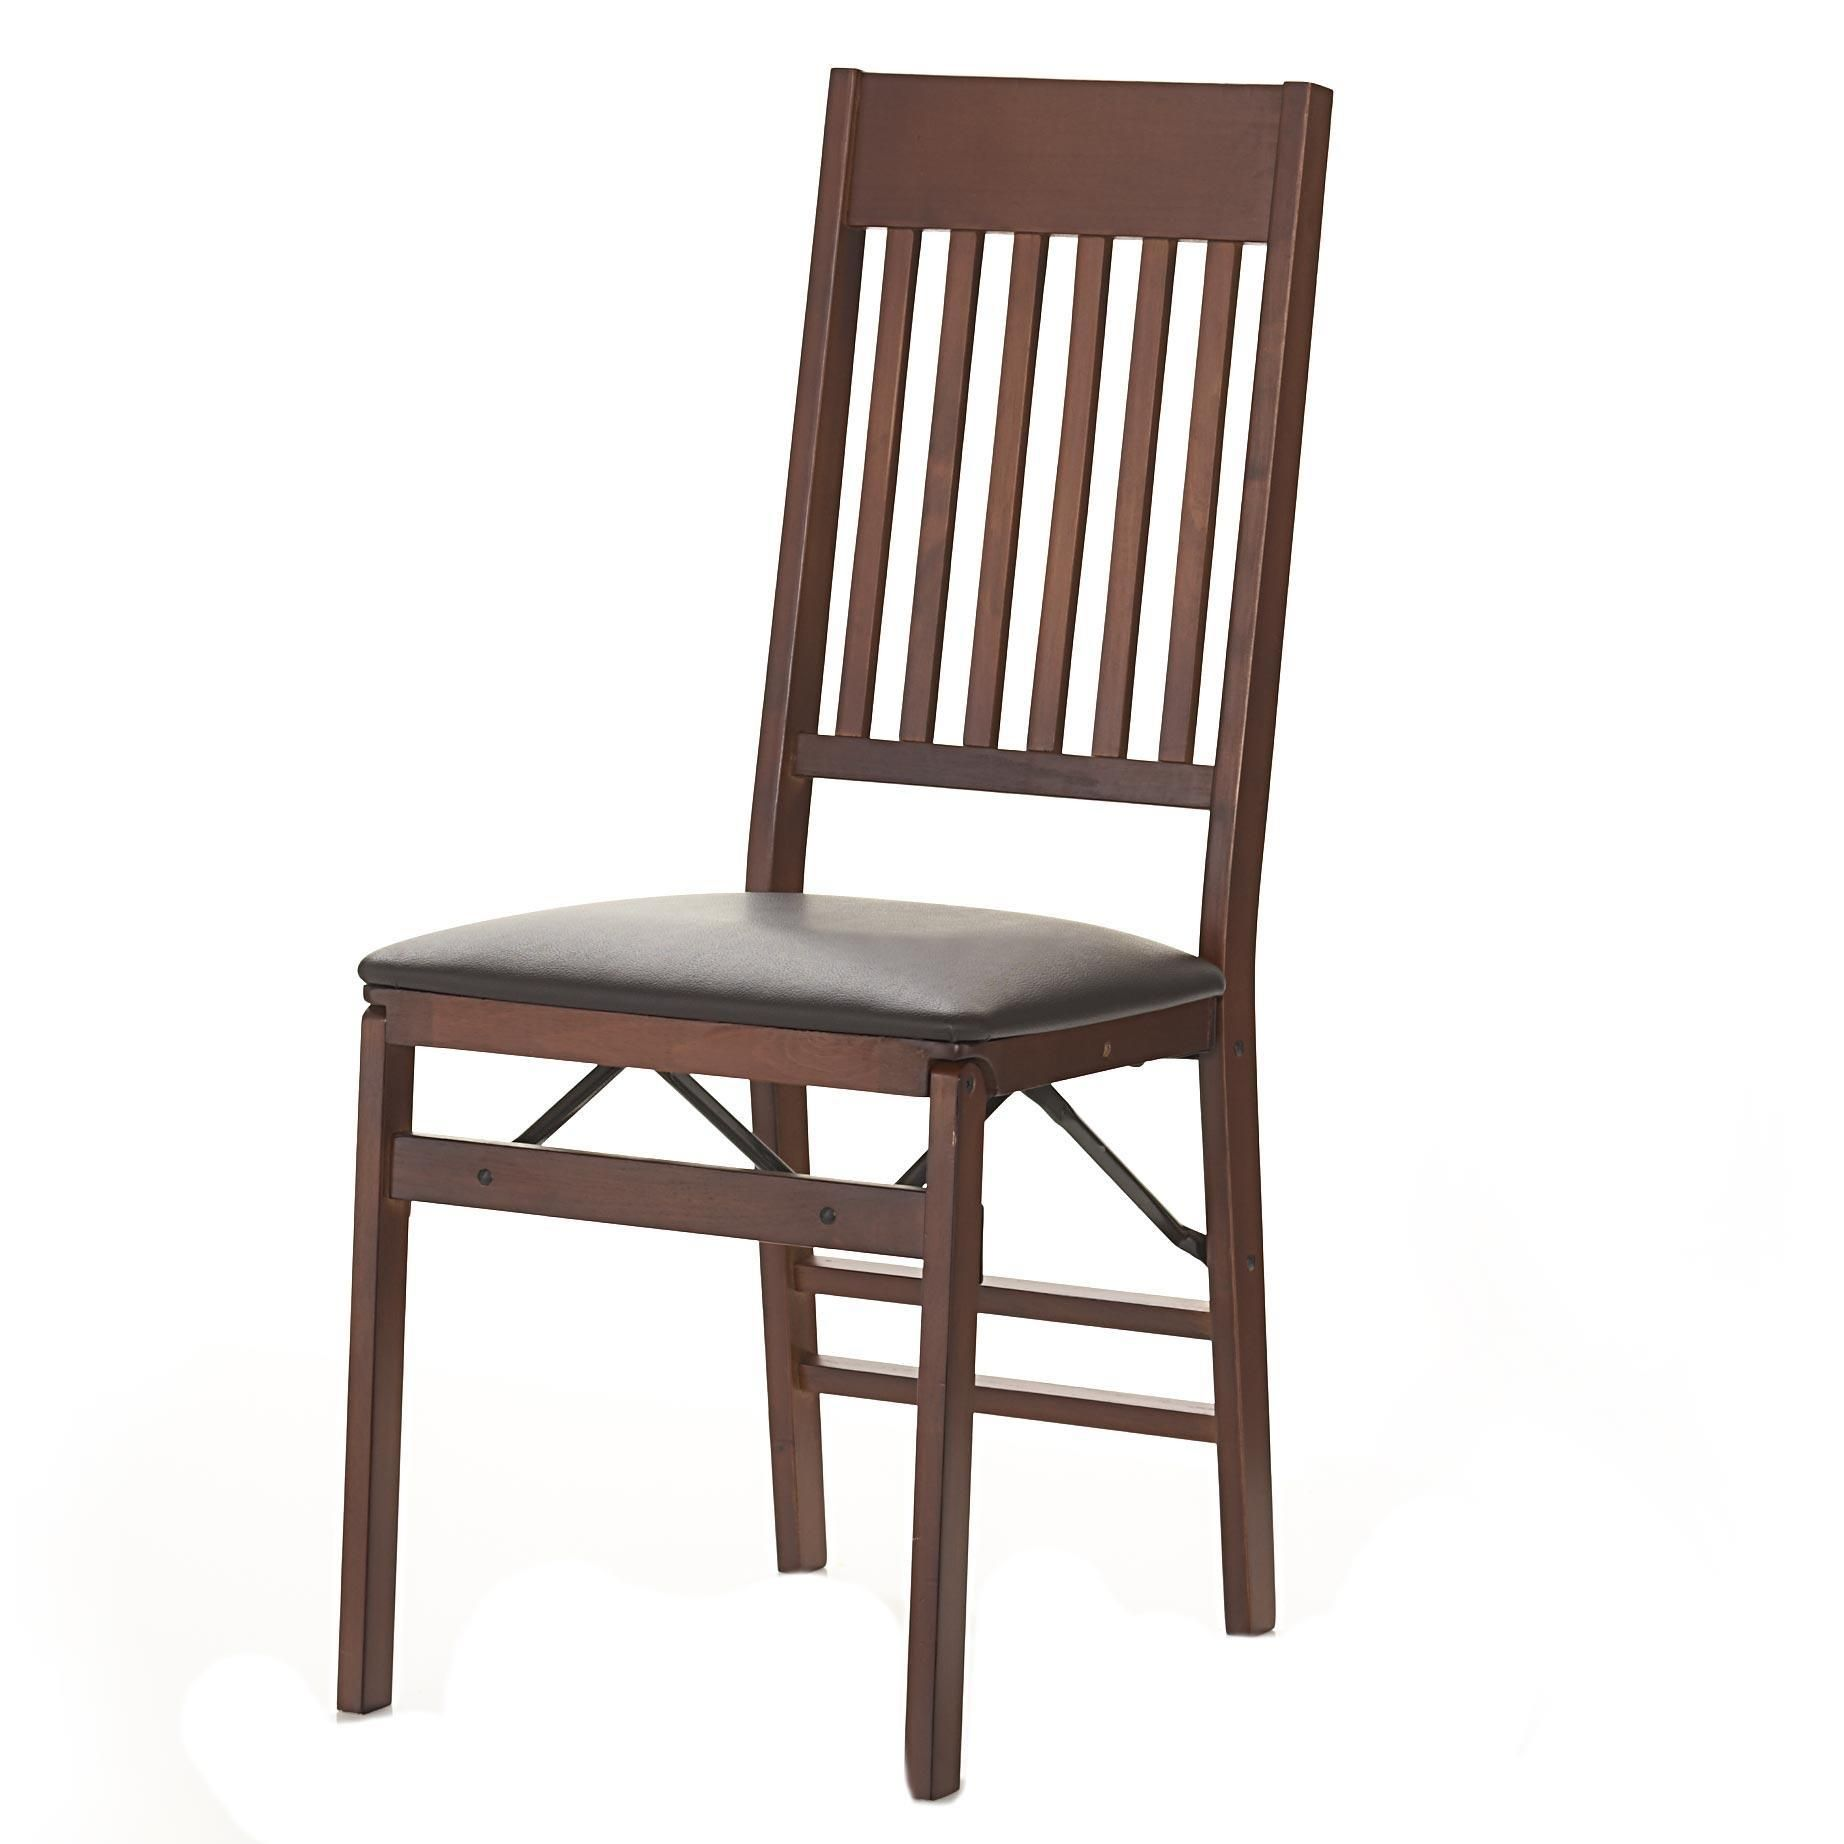 Cosco Wood Folding Chair With Padded Seat